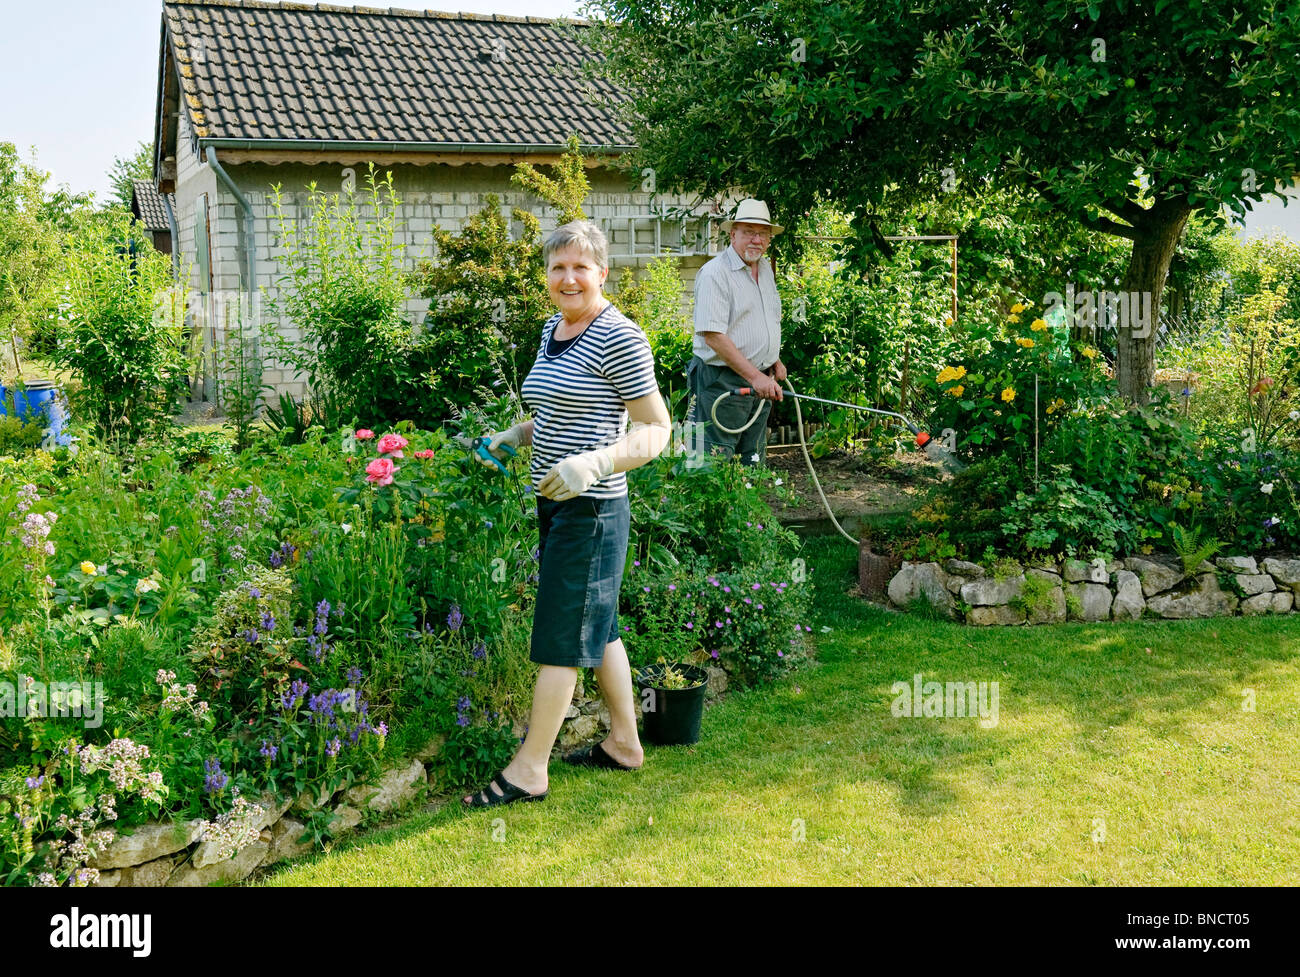 Woman pruning plants, man watering allotment garden, Germany. - Stock Image